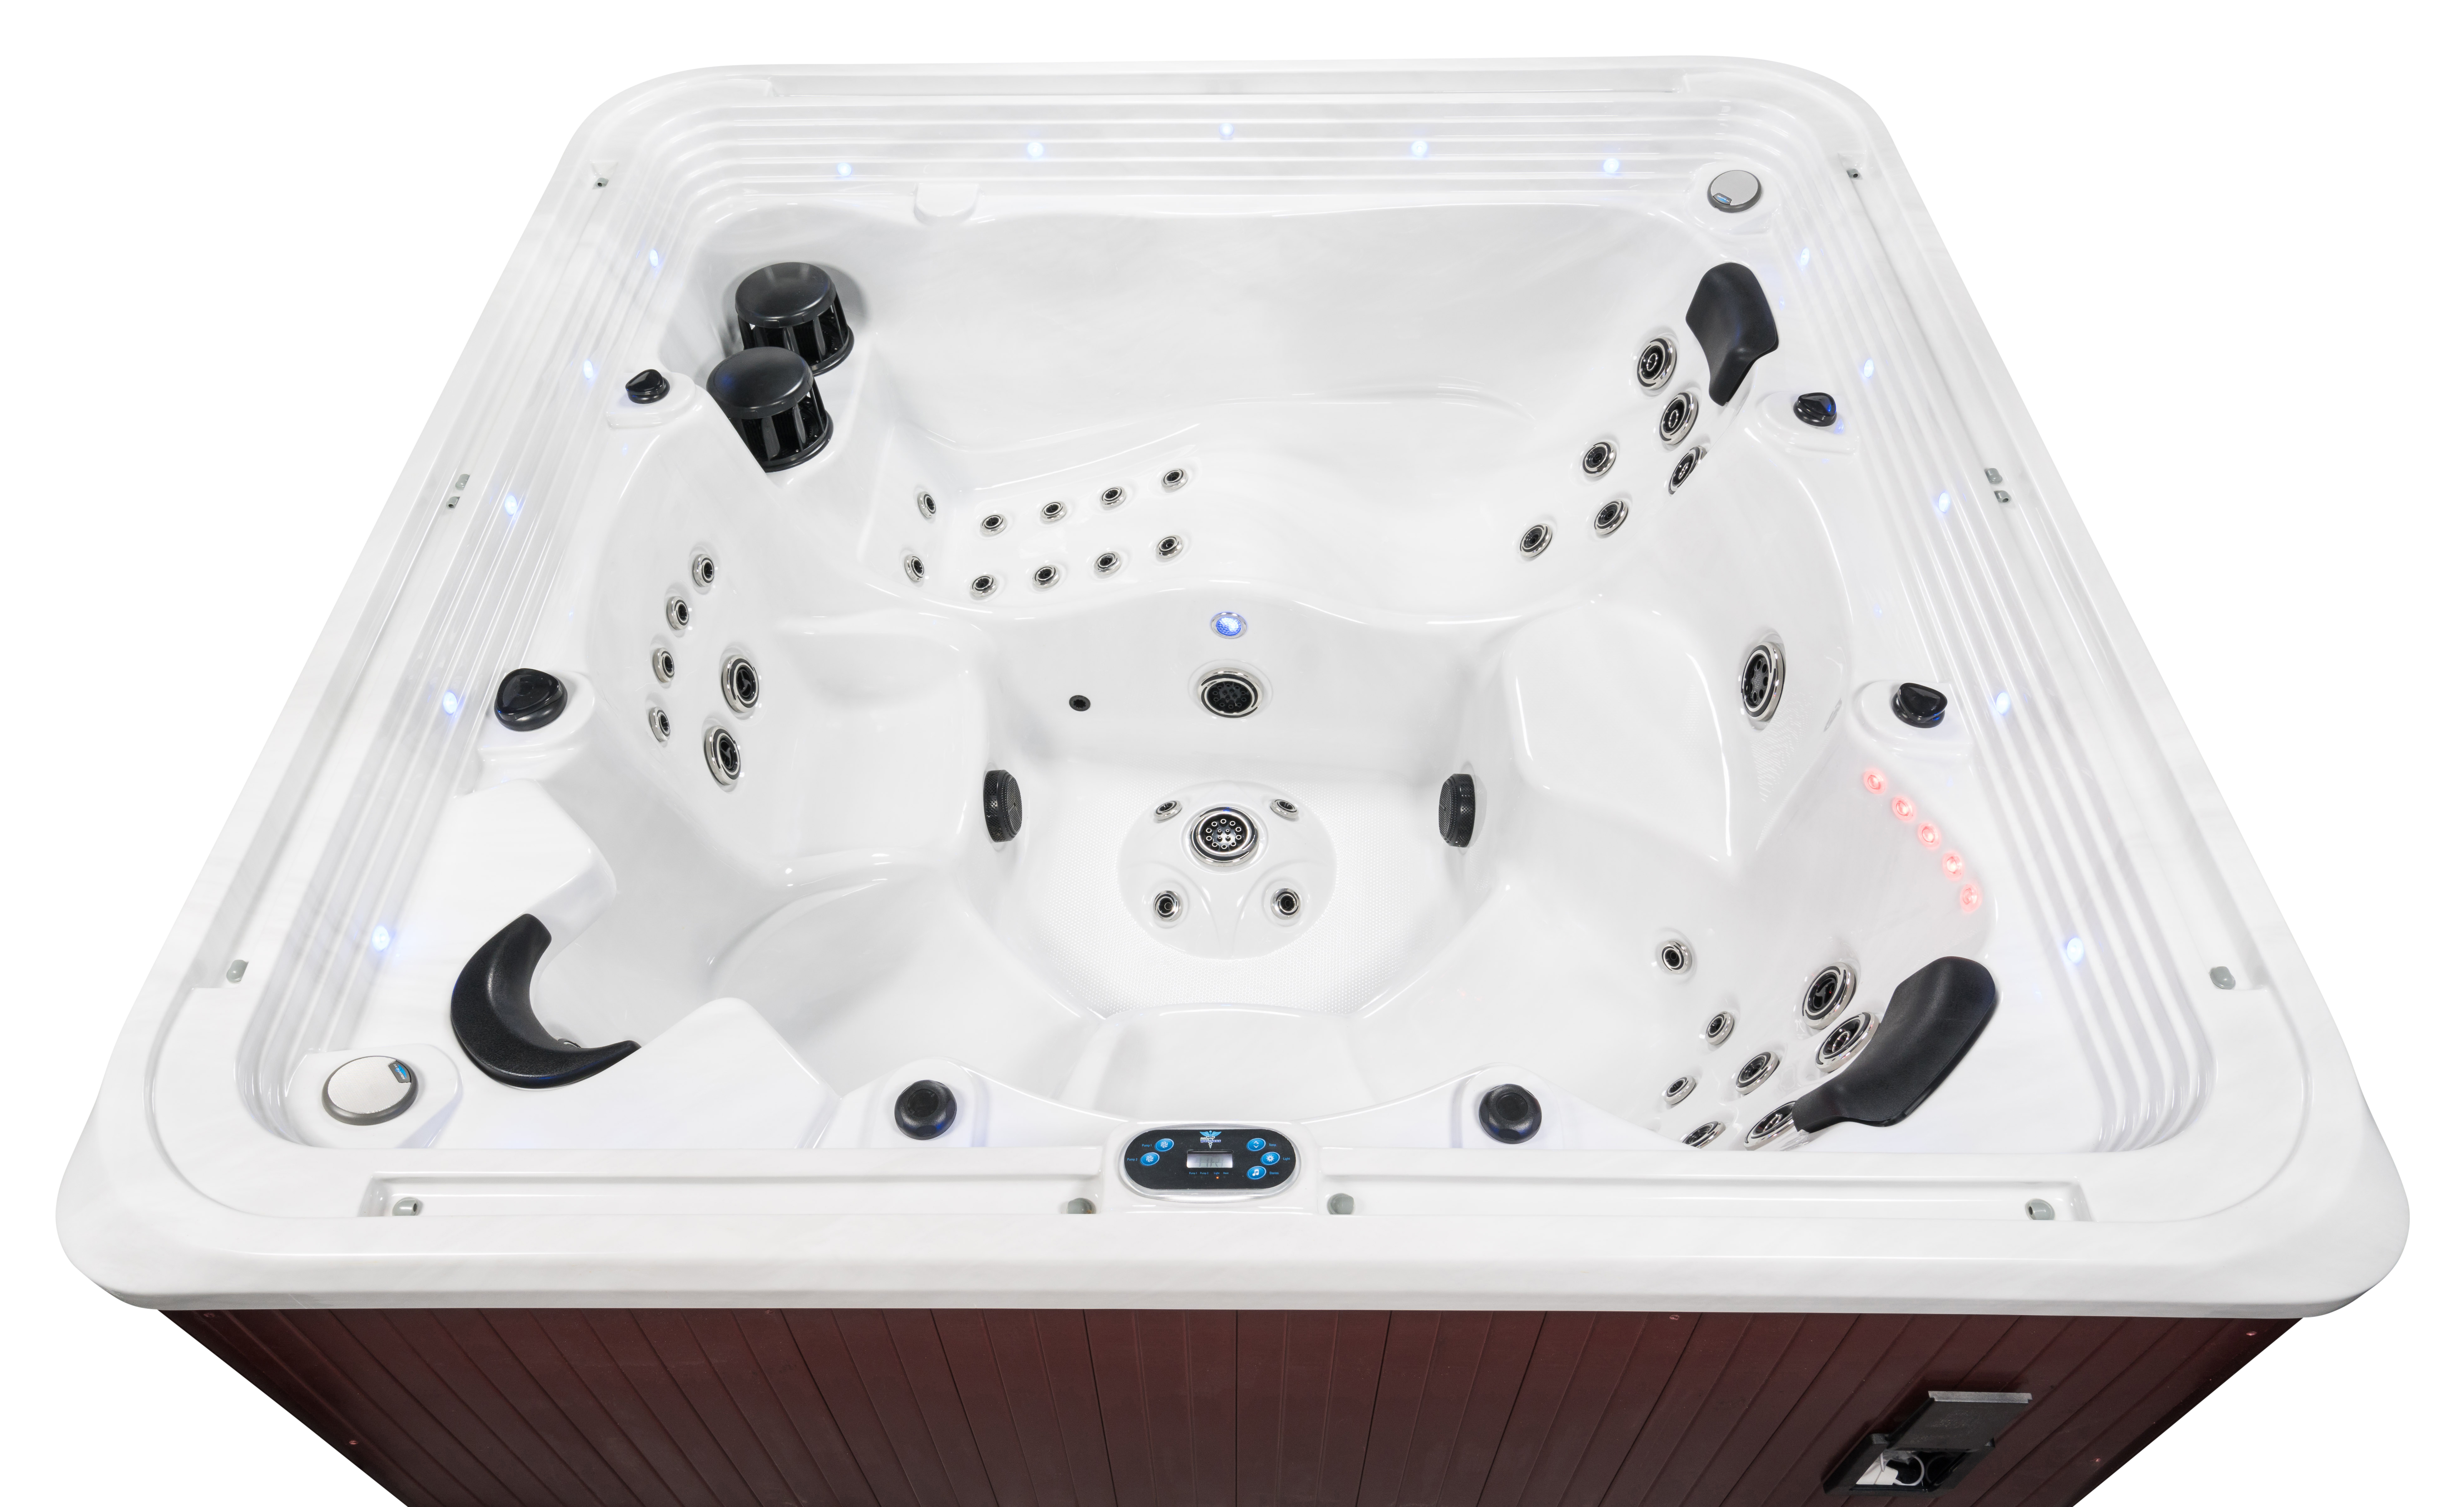 Dr Wellness G 20k Tranquility Spa W Bluetooth Waterproof